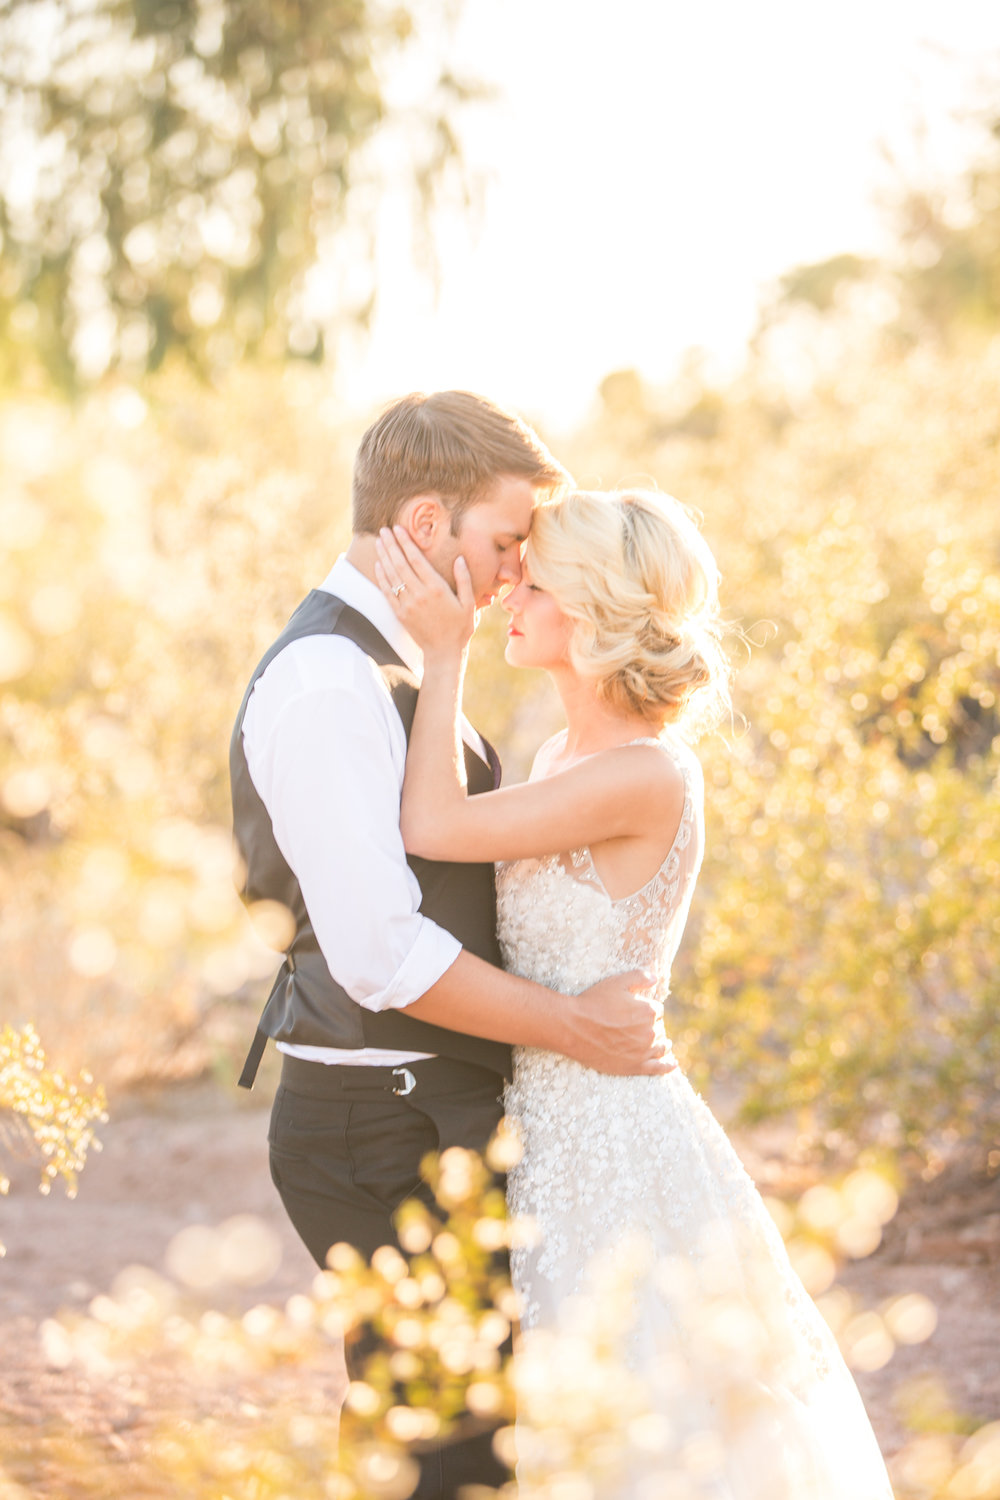 Arizona_Wedding_Workshop_KatelynnCarlsonPhotography-31.jpg